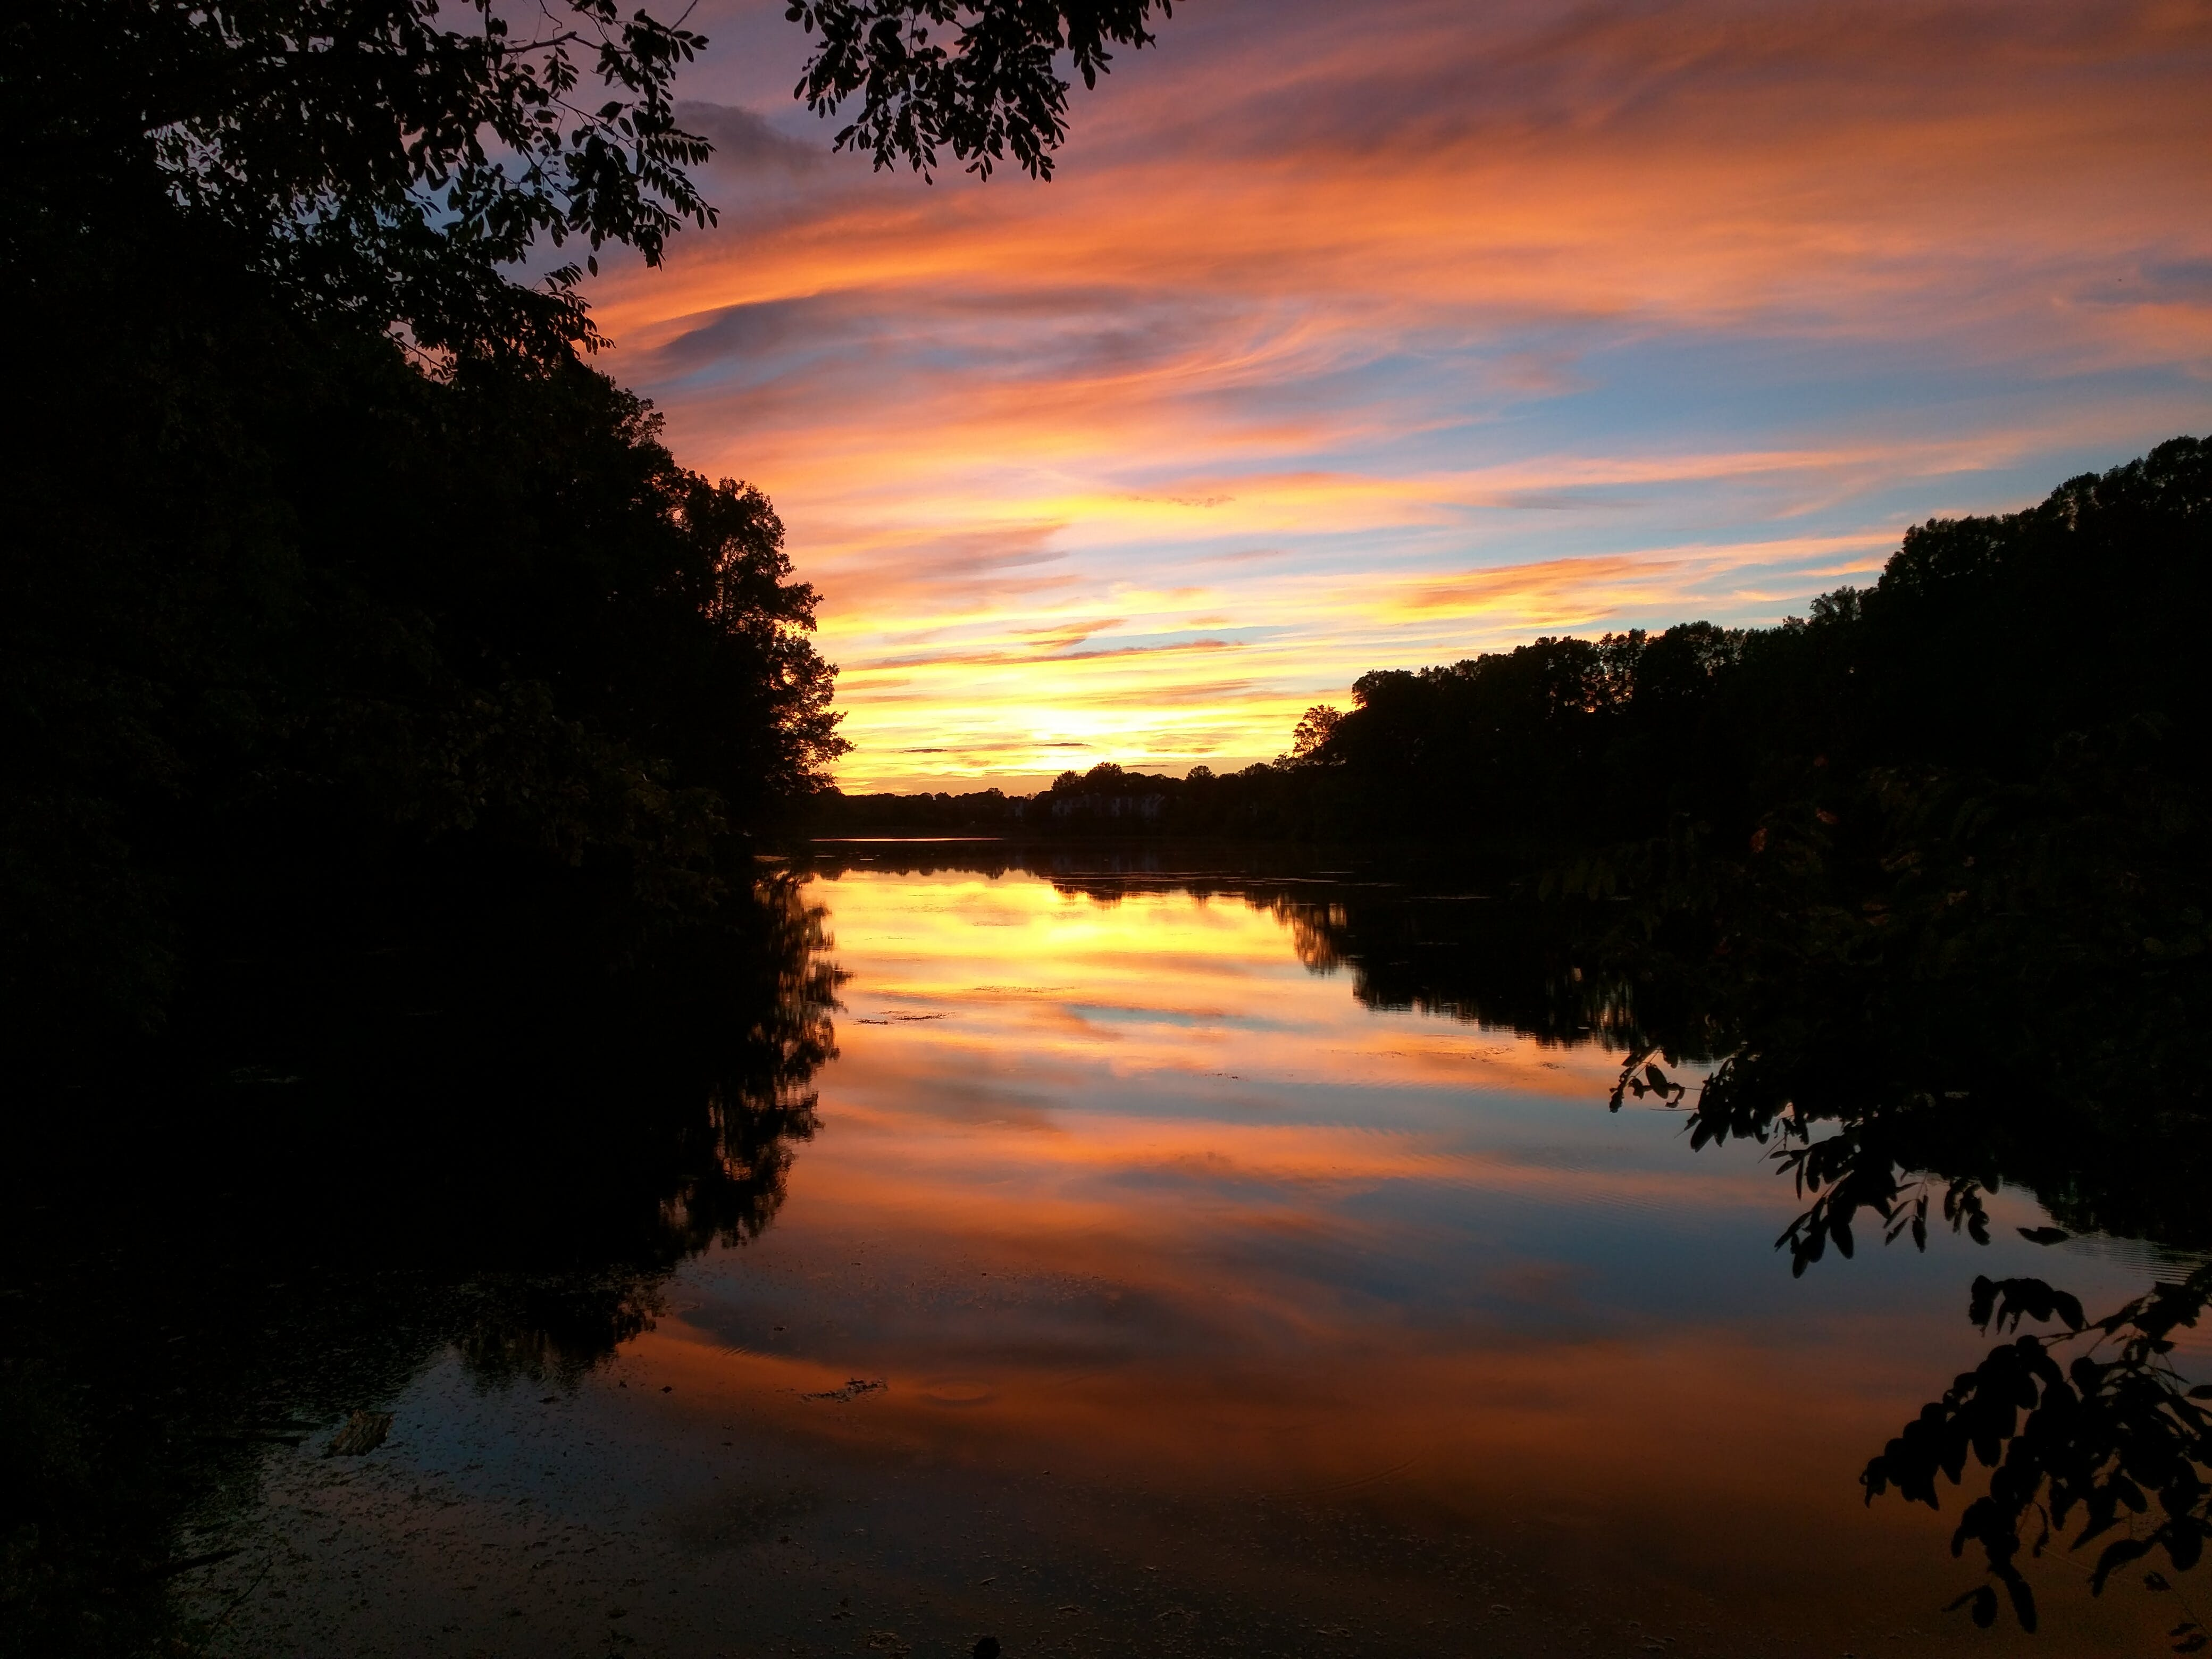 Silhouette Photography of Body of Water Between Trees during Golden Hour